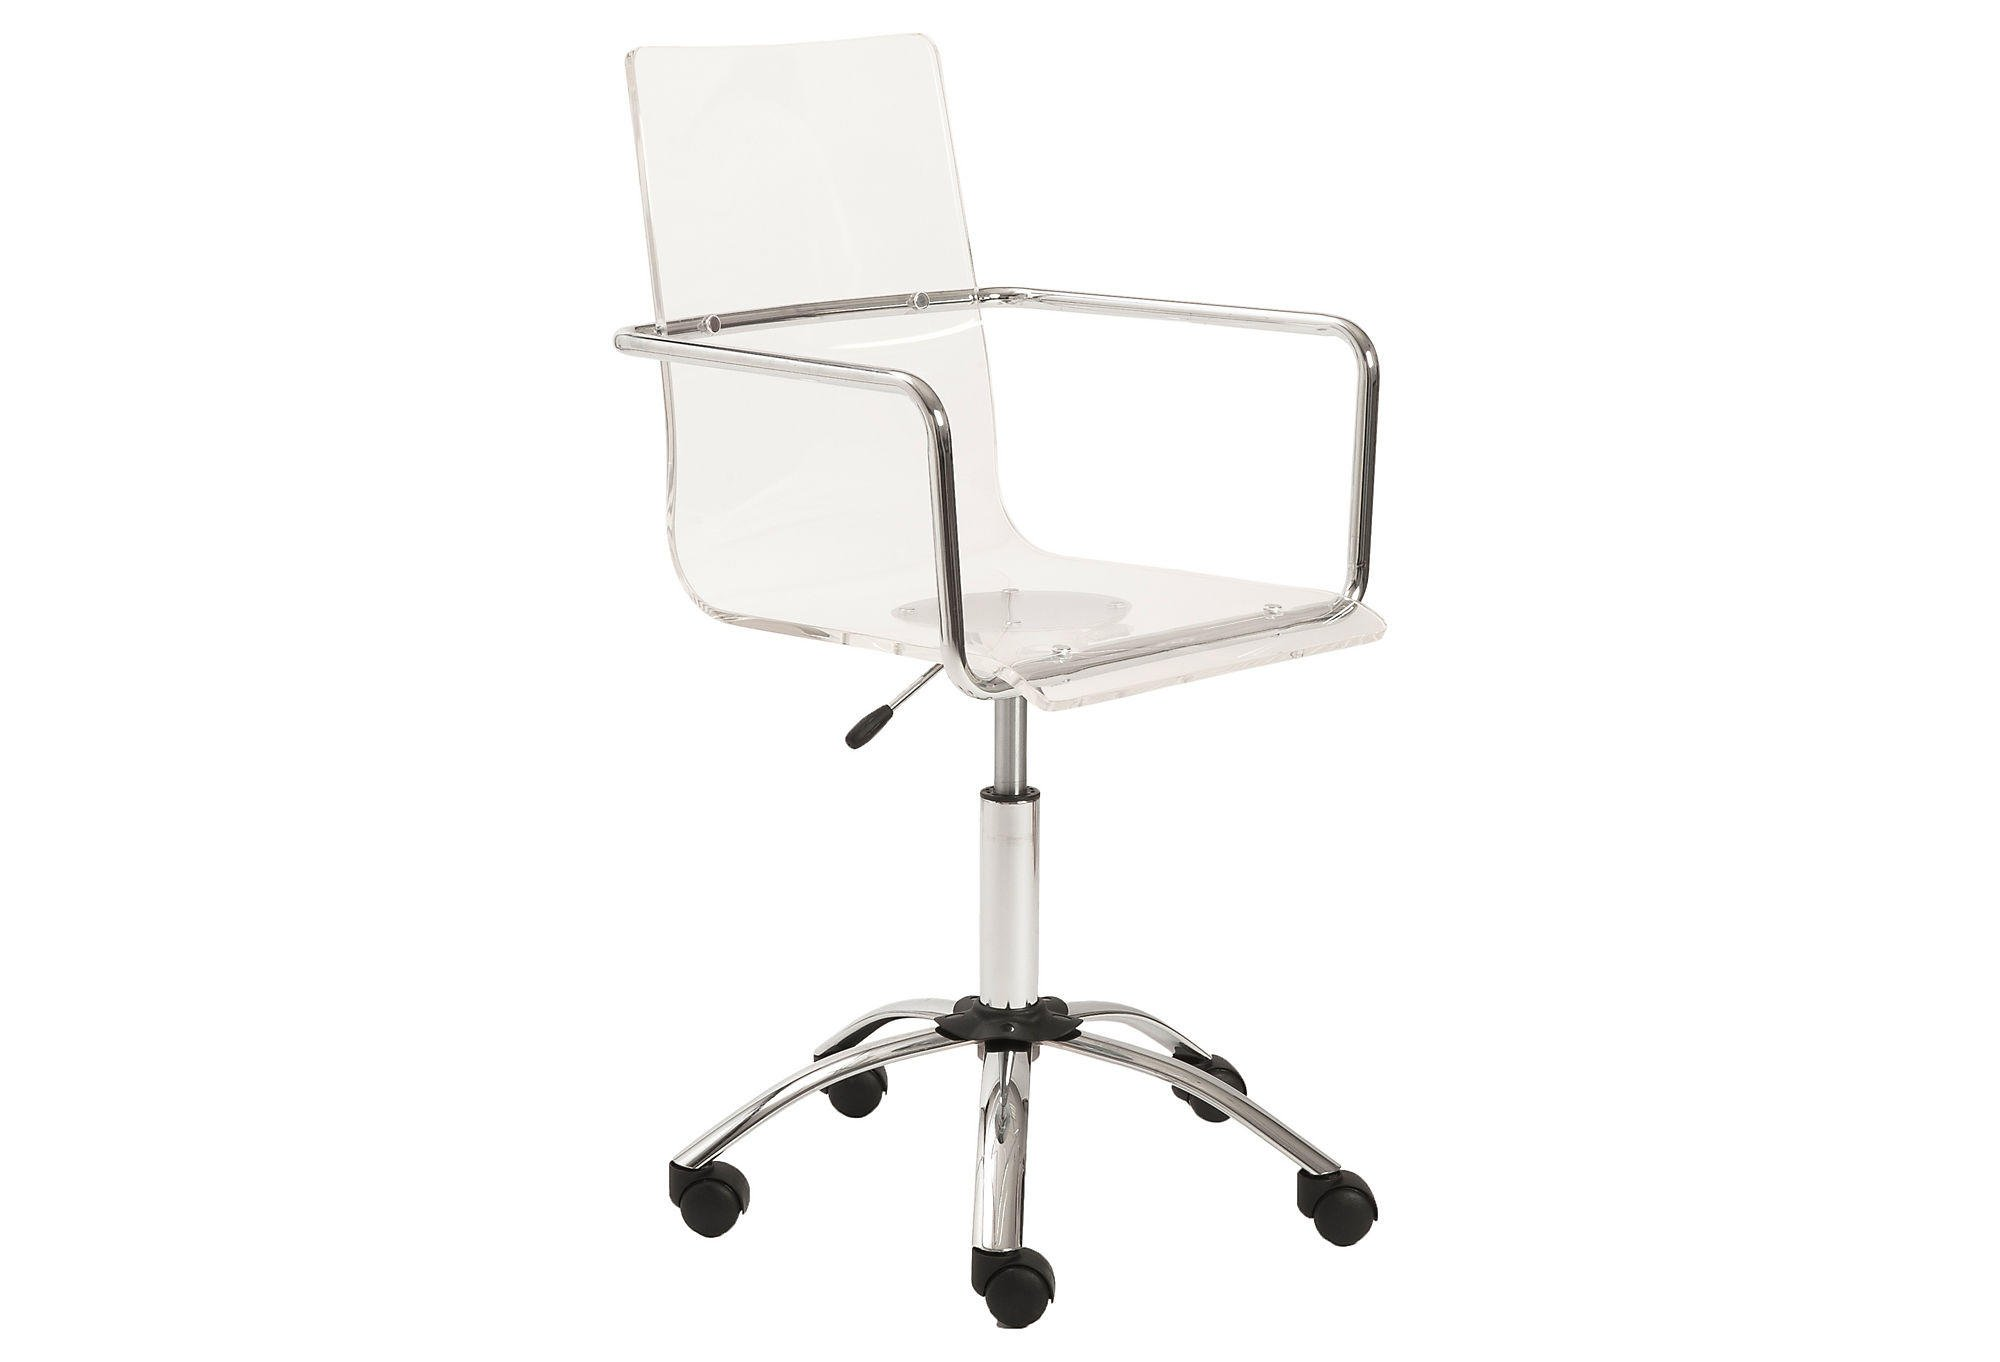 Chloe fice Chair Acrylic Lucite from e Kings Lane